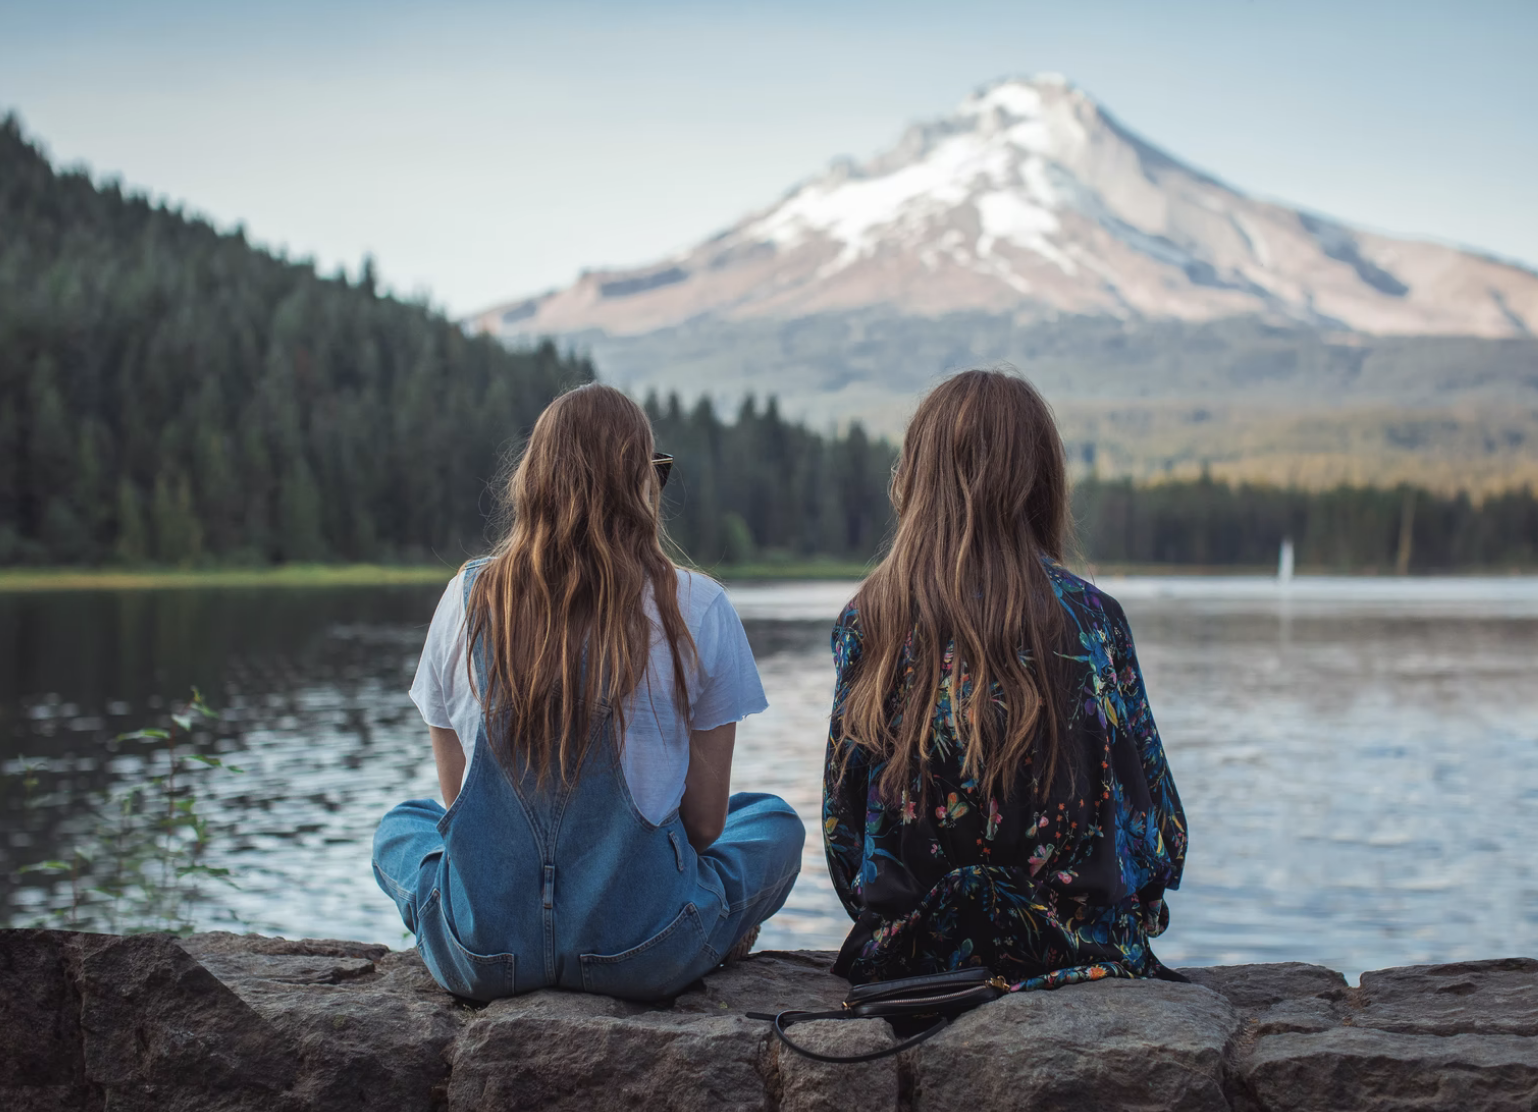 5 easy ways you can disciple others